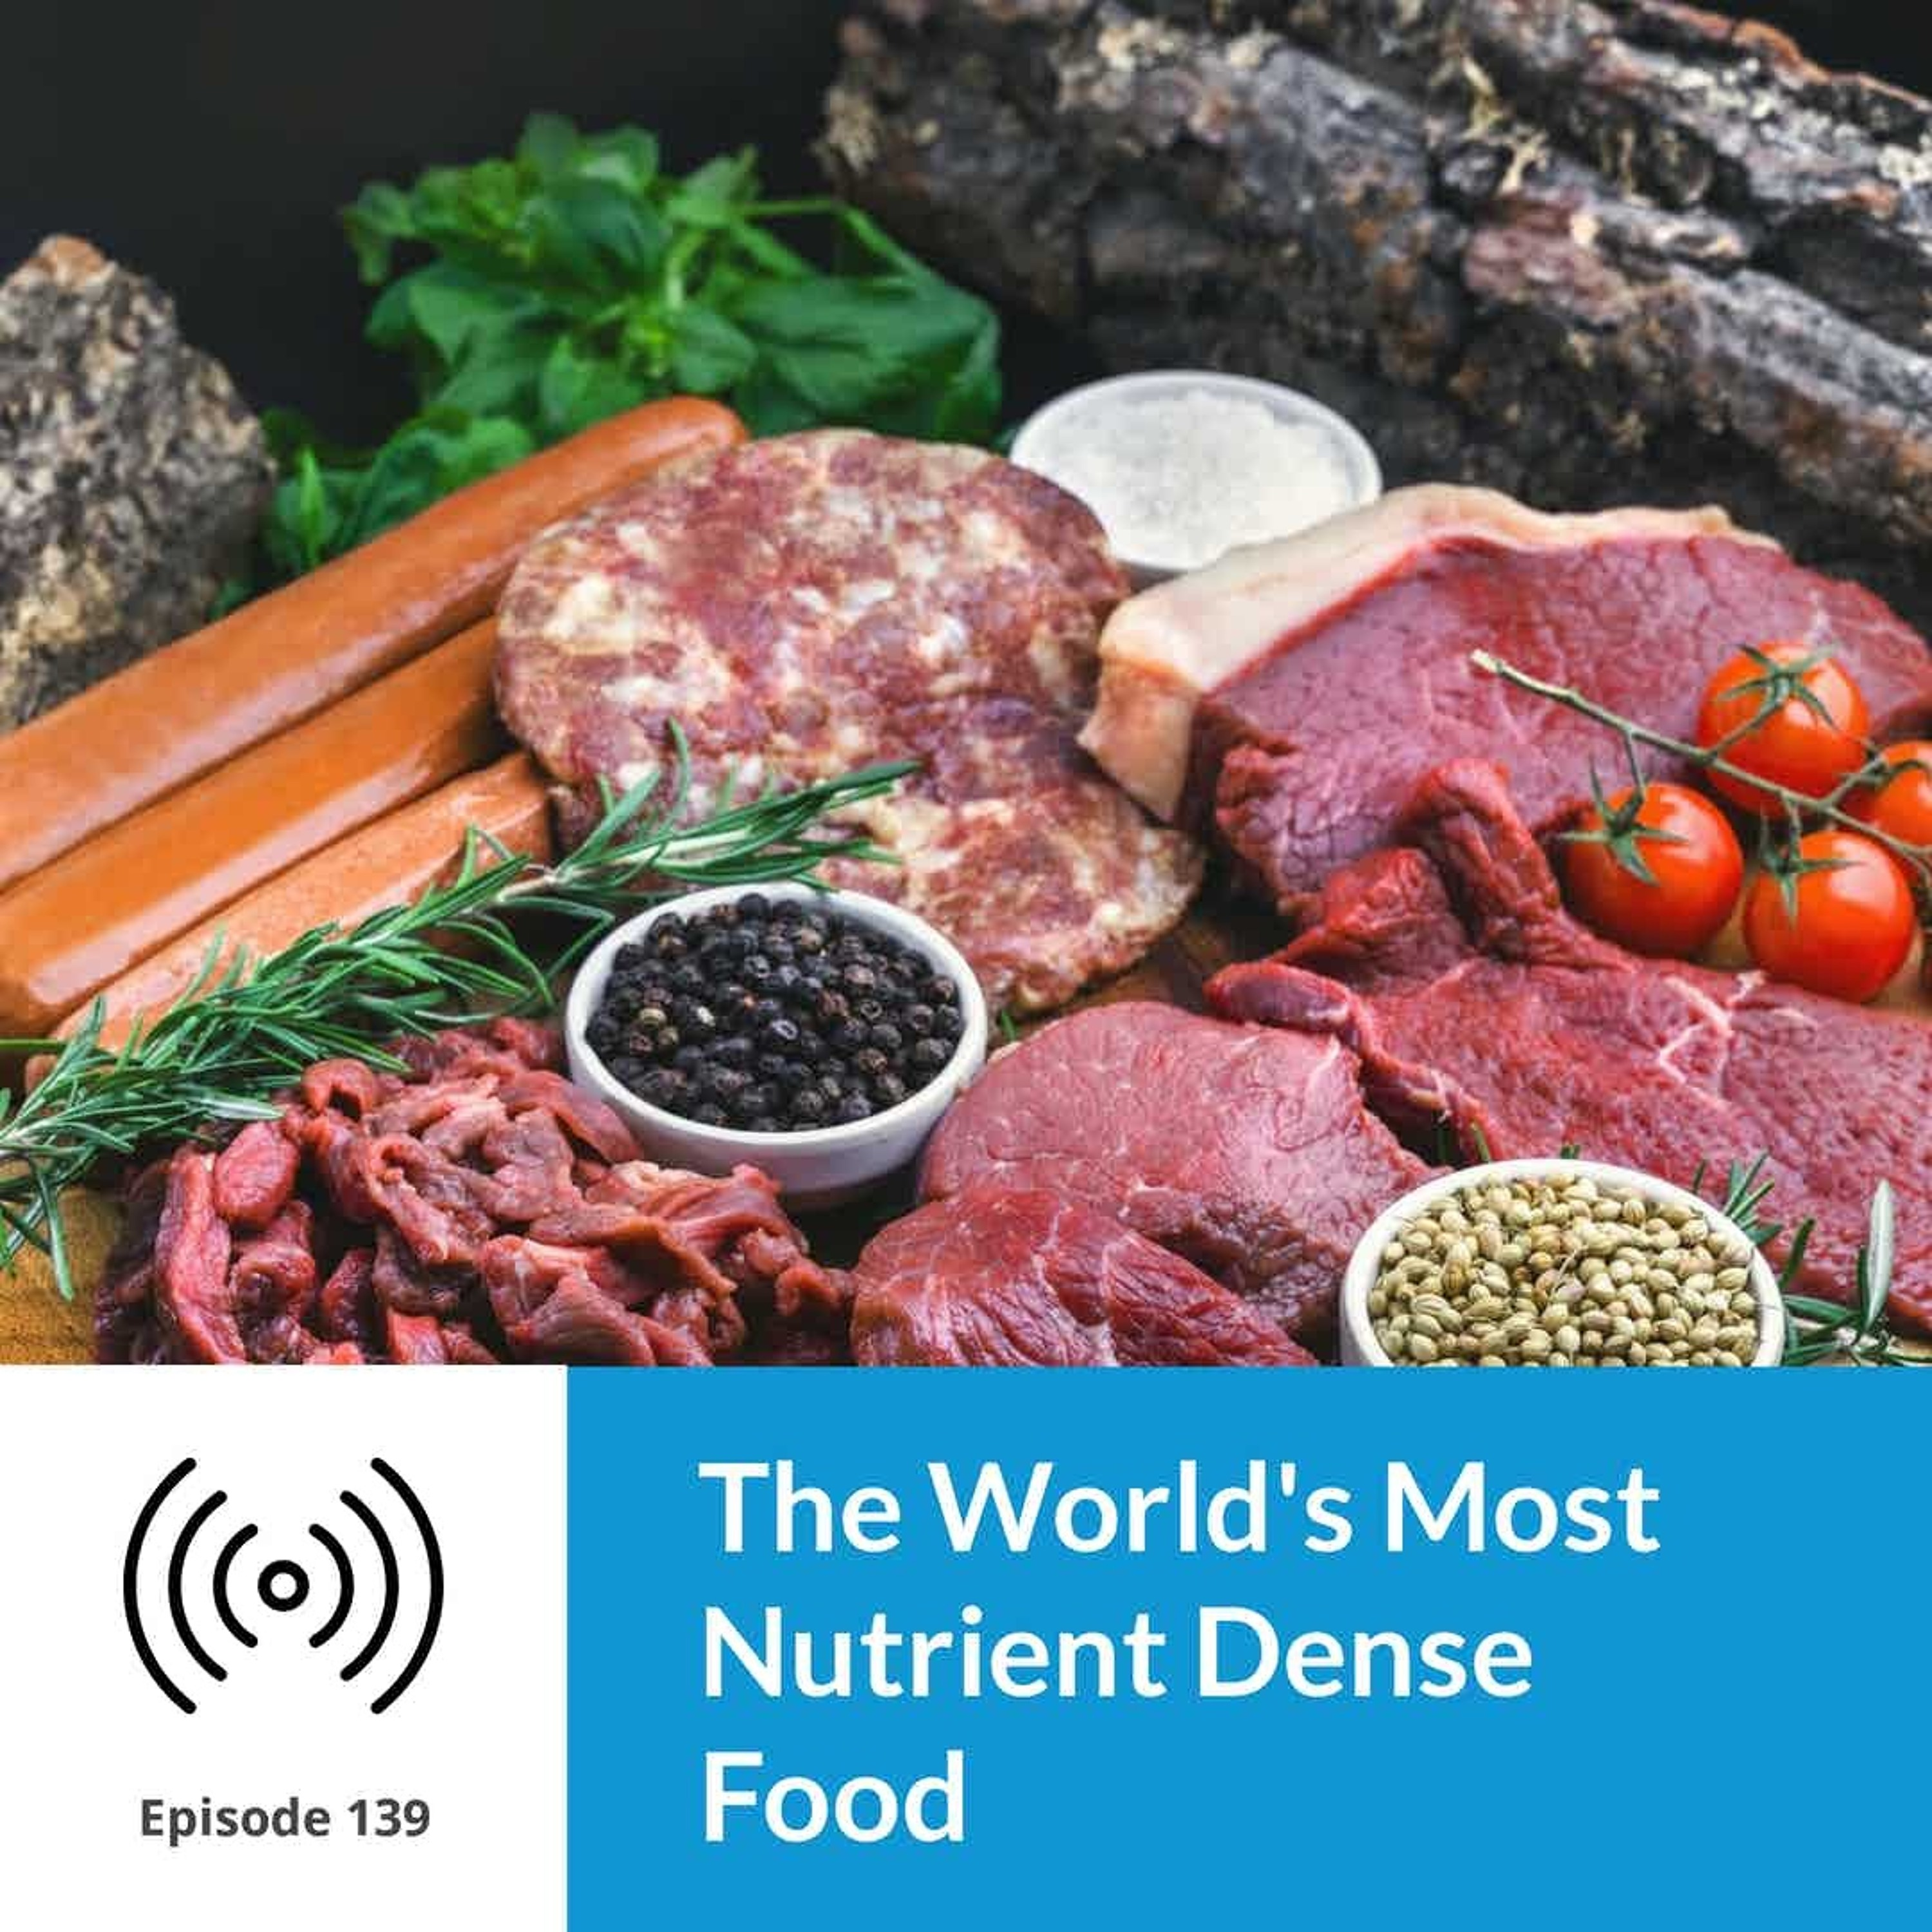 Episode 139 The World's Most Nutrient Dense Food